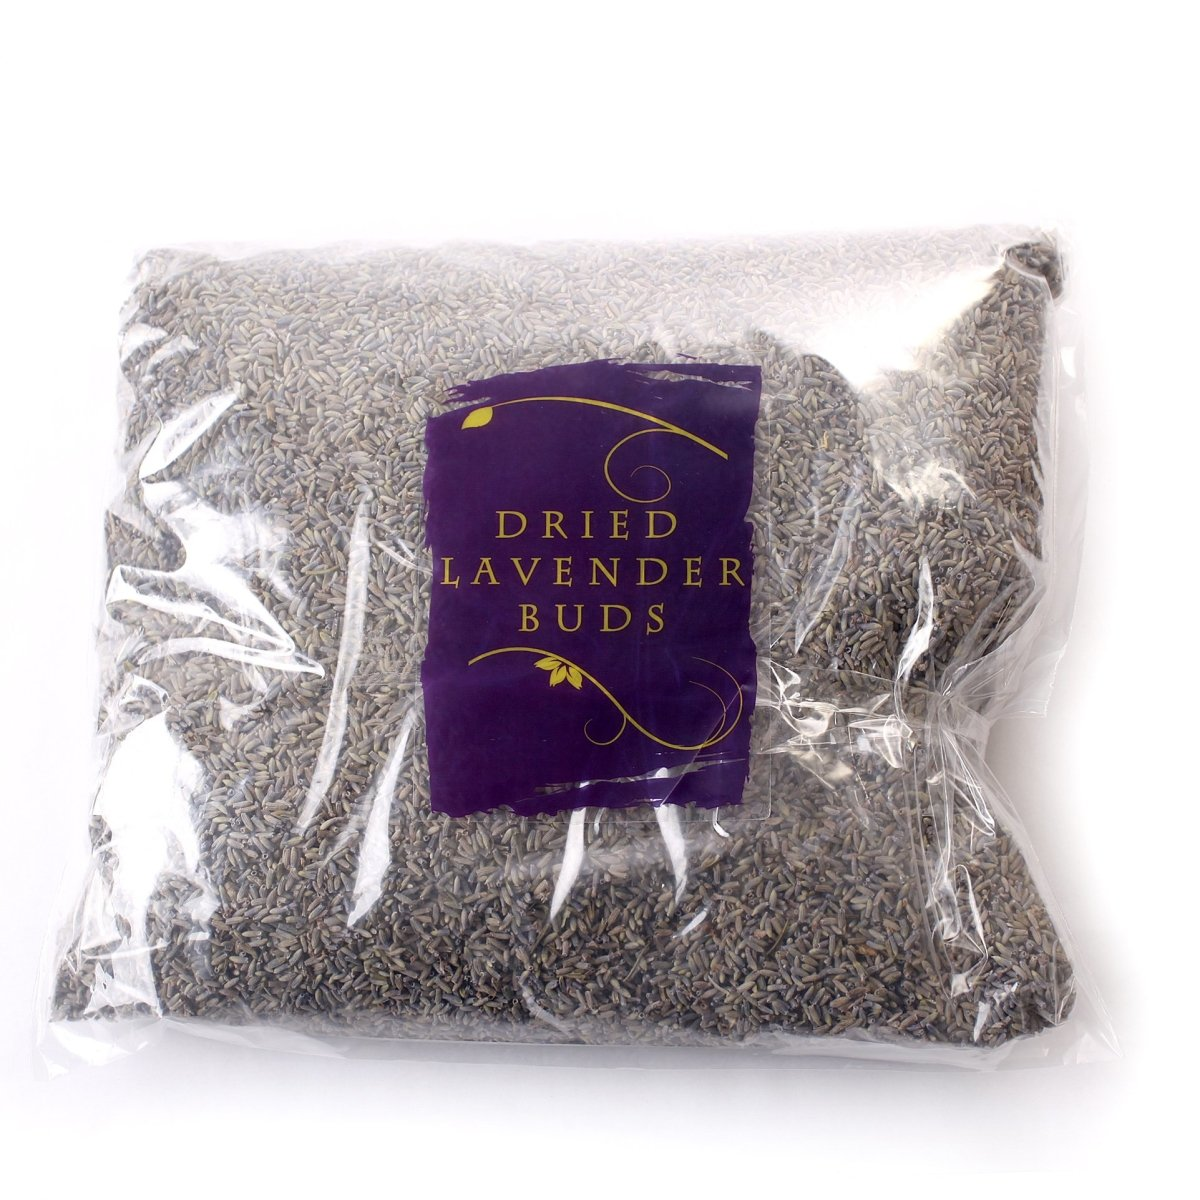 Dried Lavender Buds - Mystic Moments UK